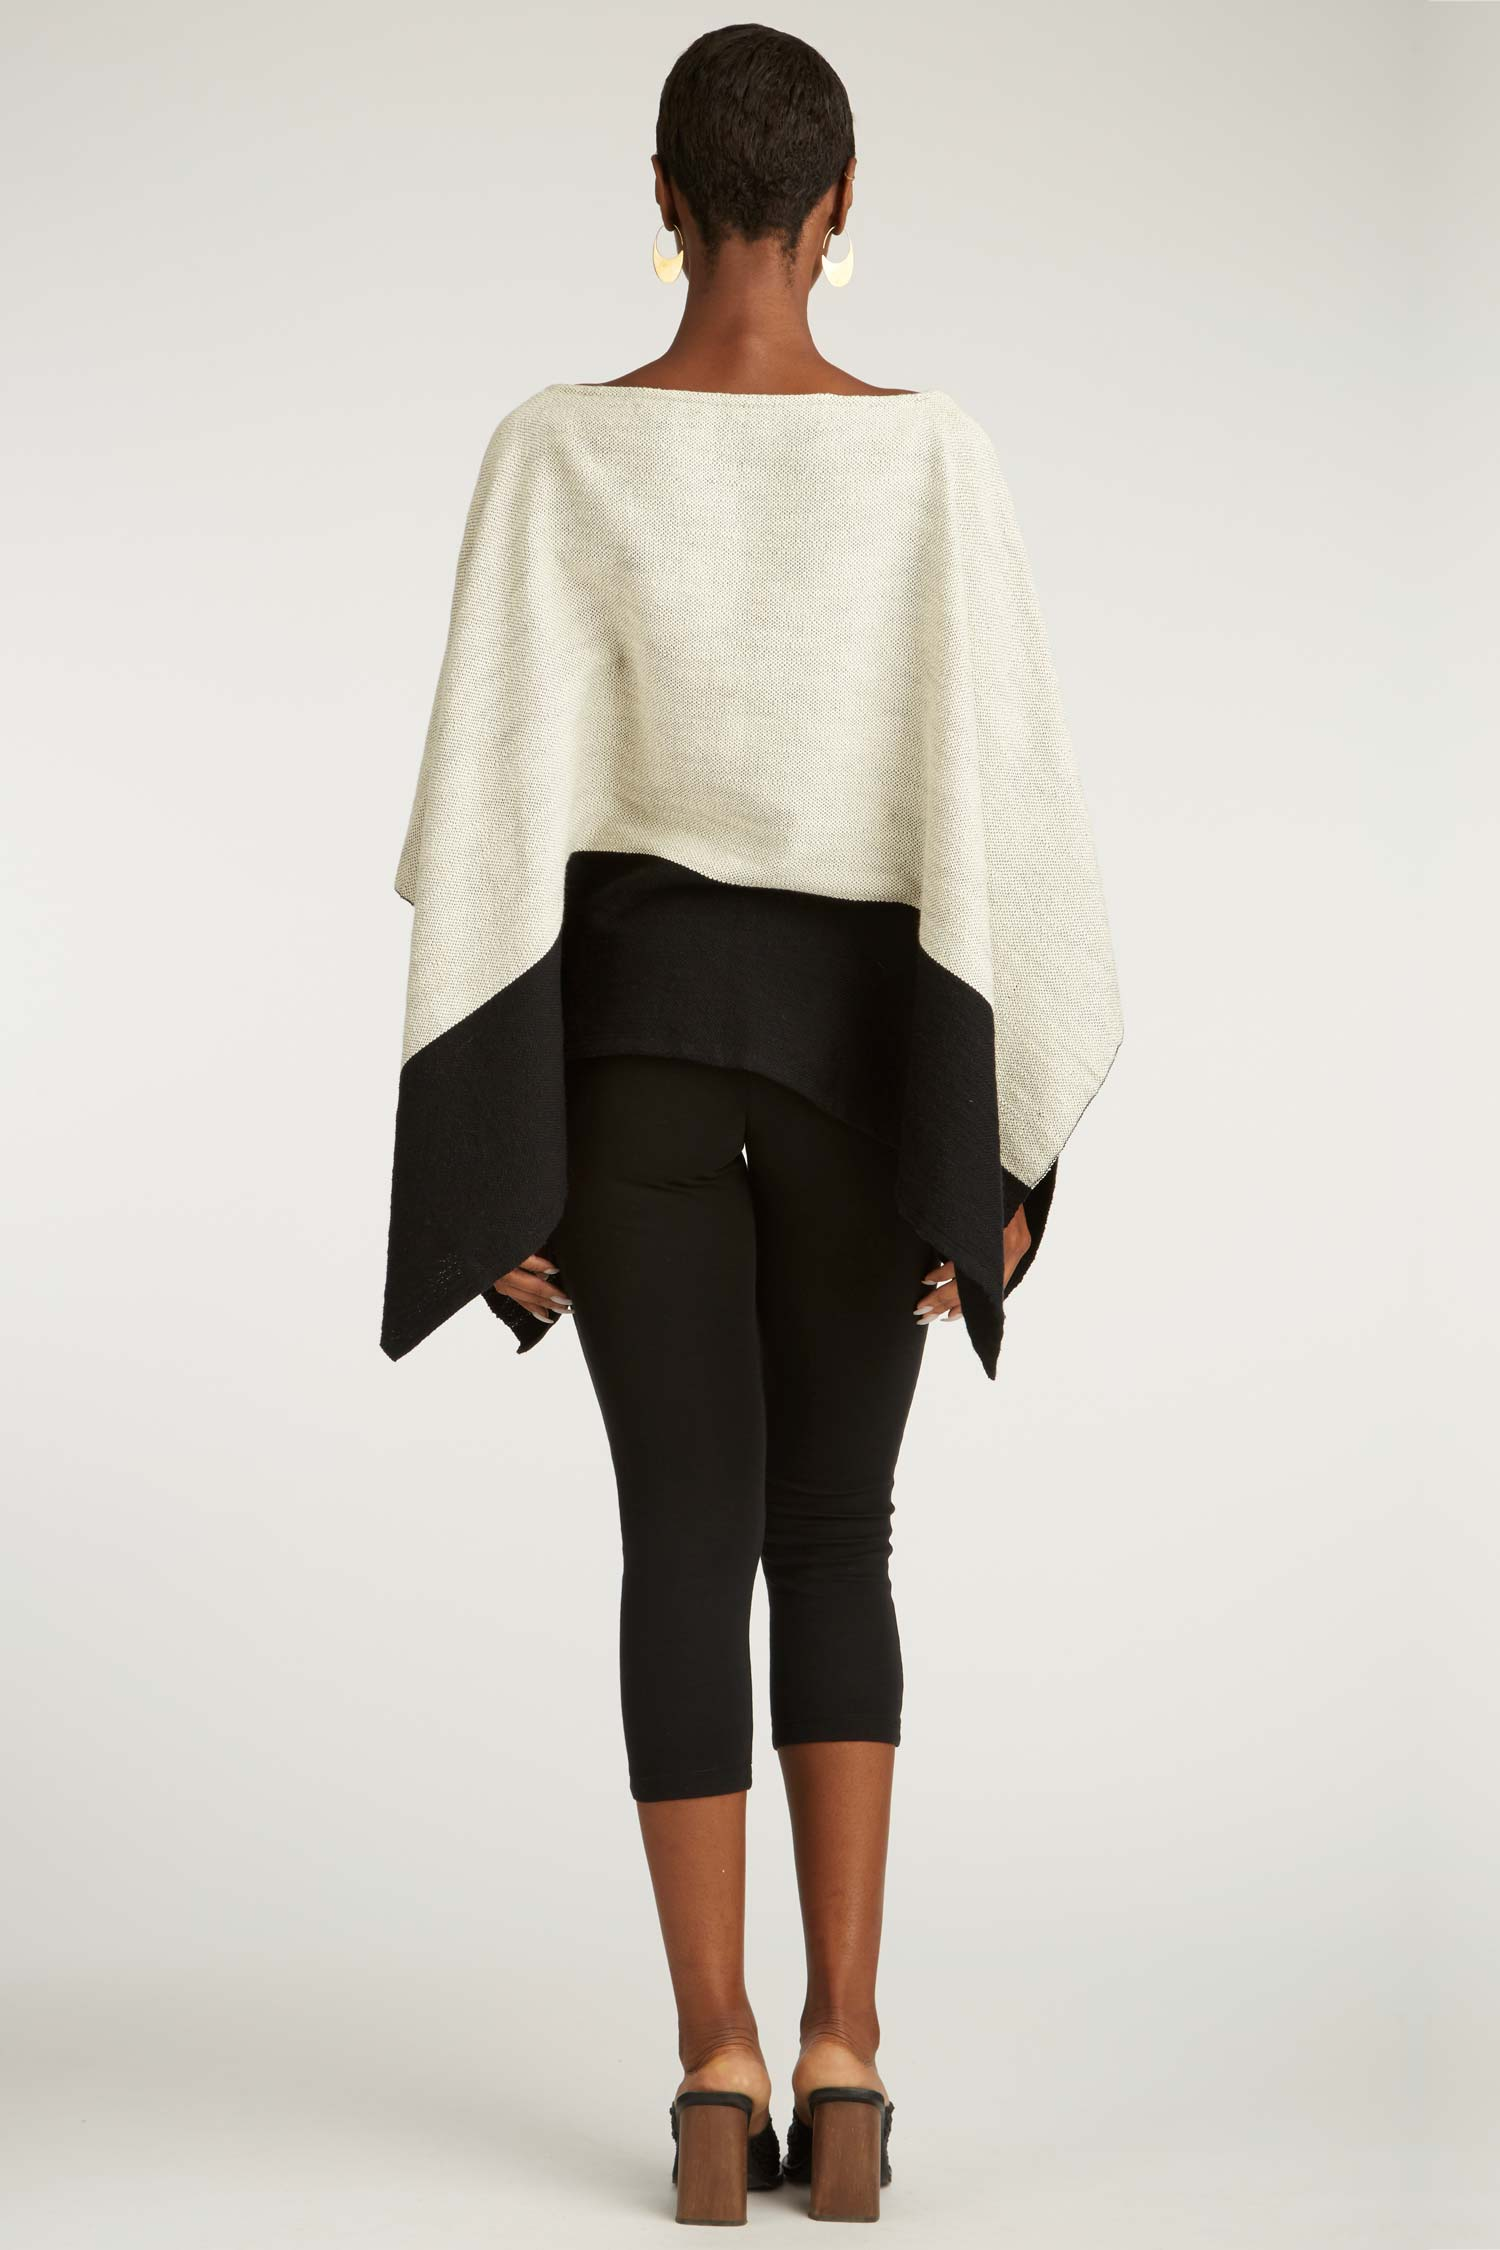 Womens Organic Cotton Poncho | Ivory Black | Handwoven